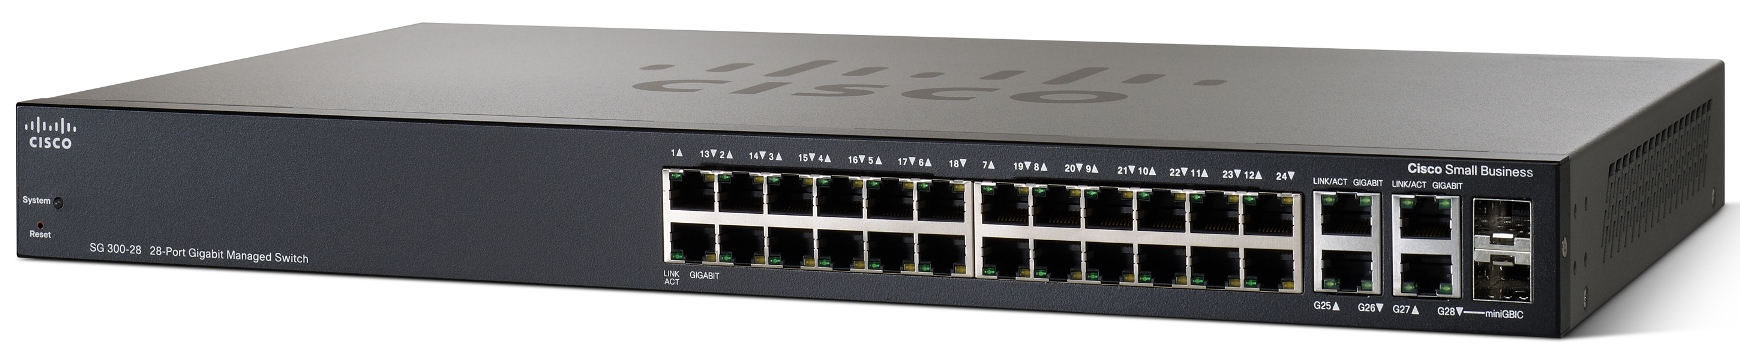 Cisco SRW2024-K9 SG300-28 28-port Gigabit Managed Switch